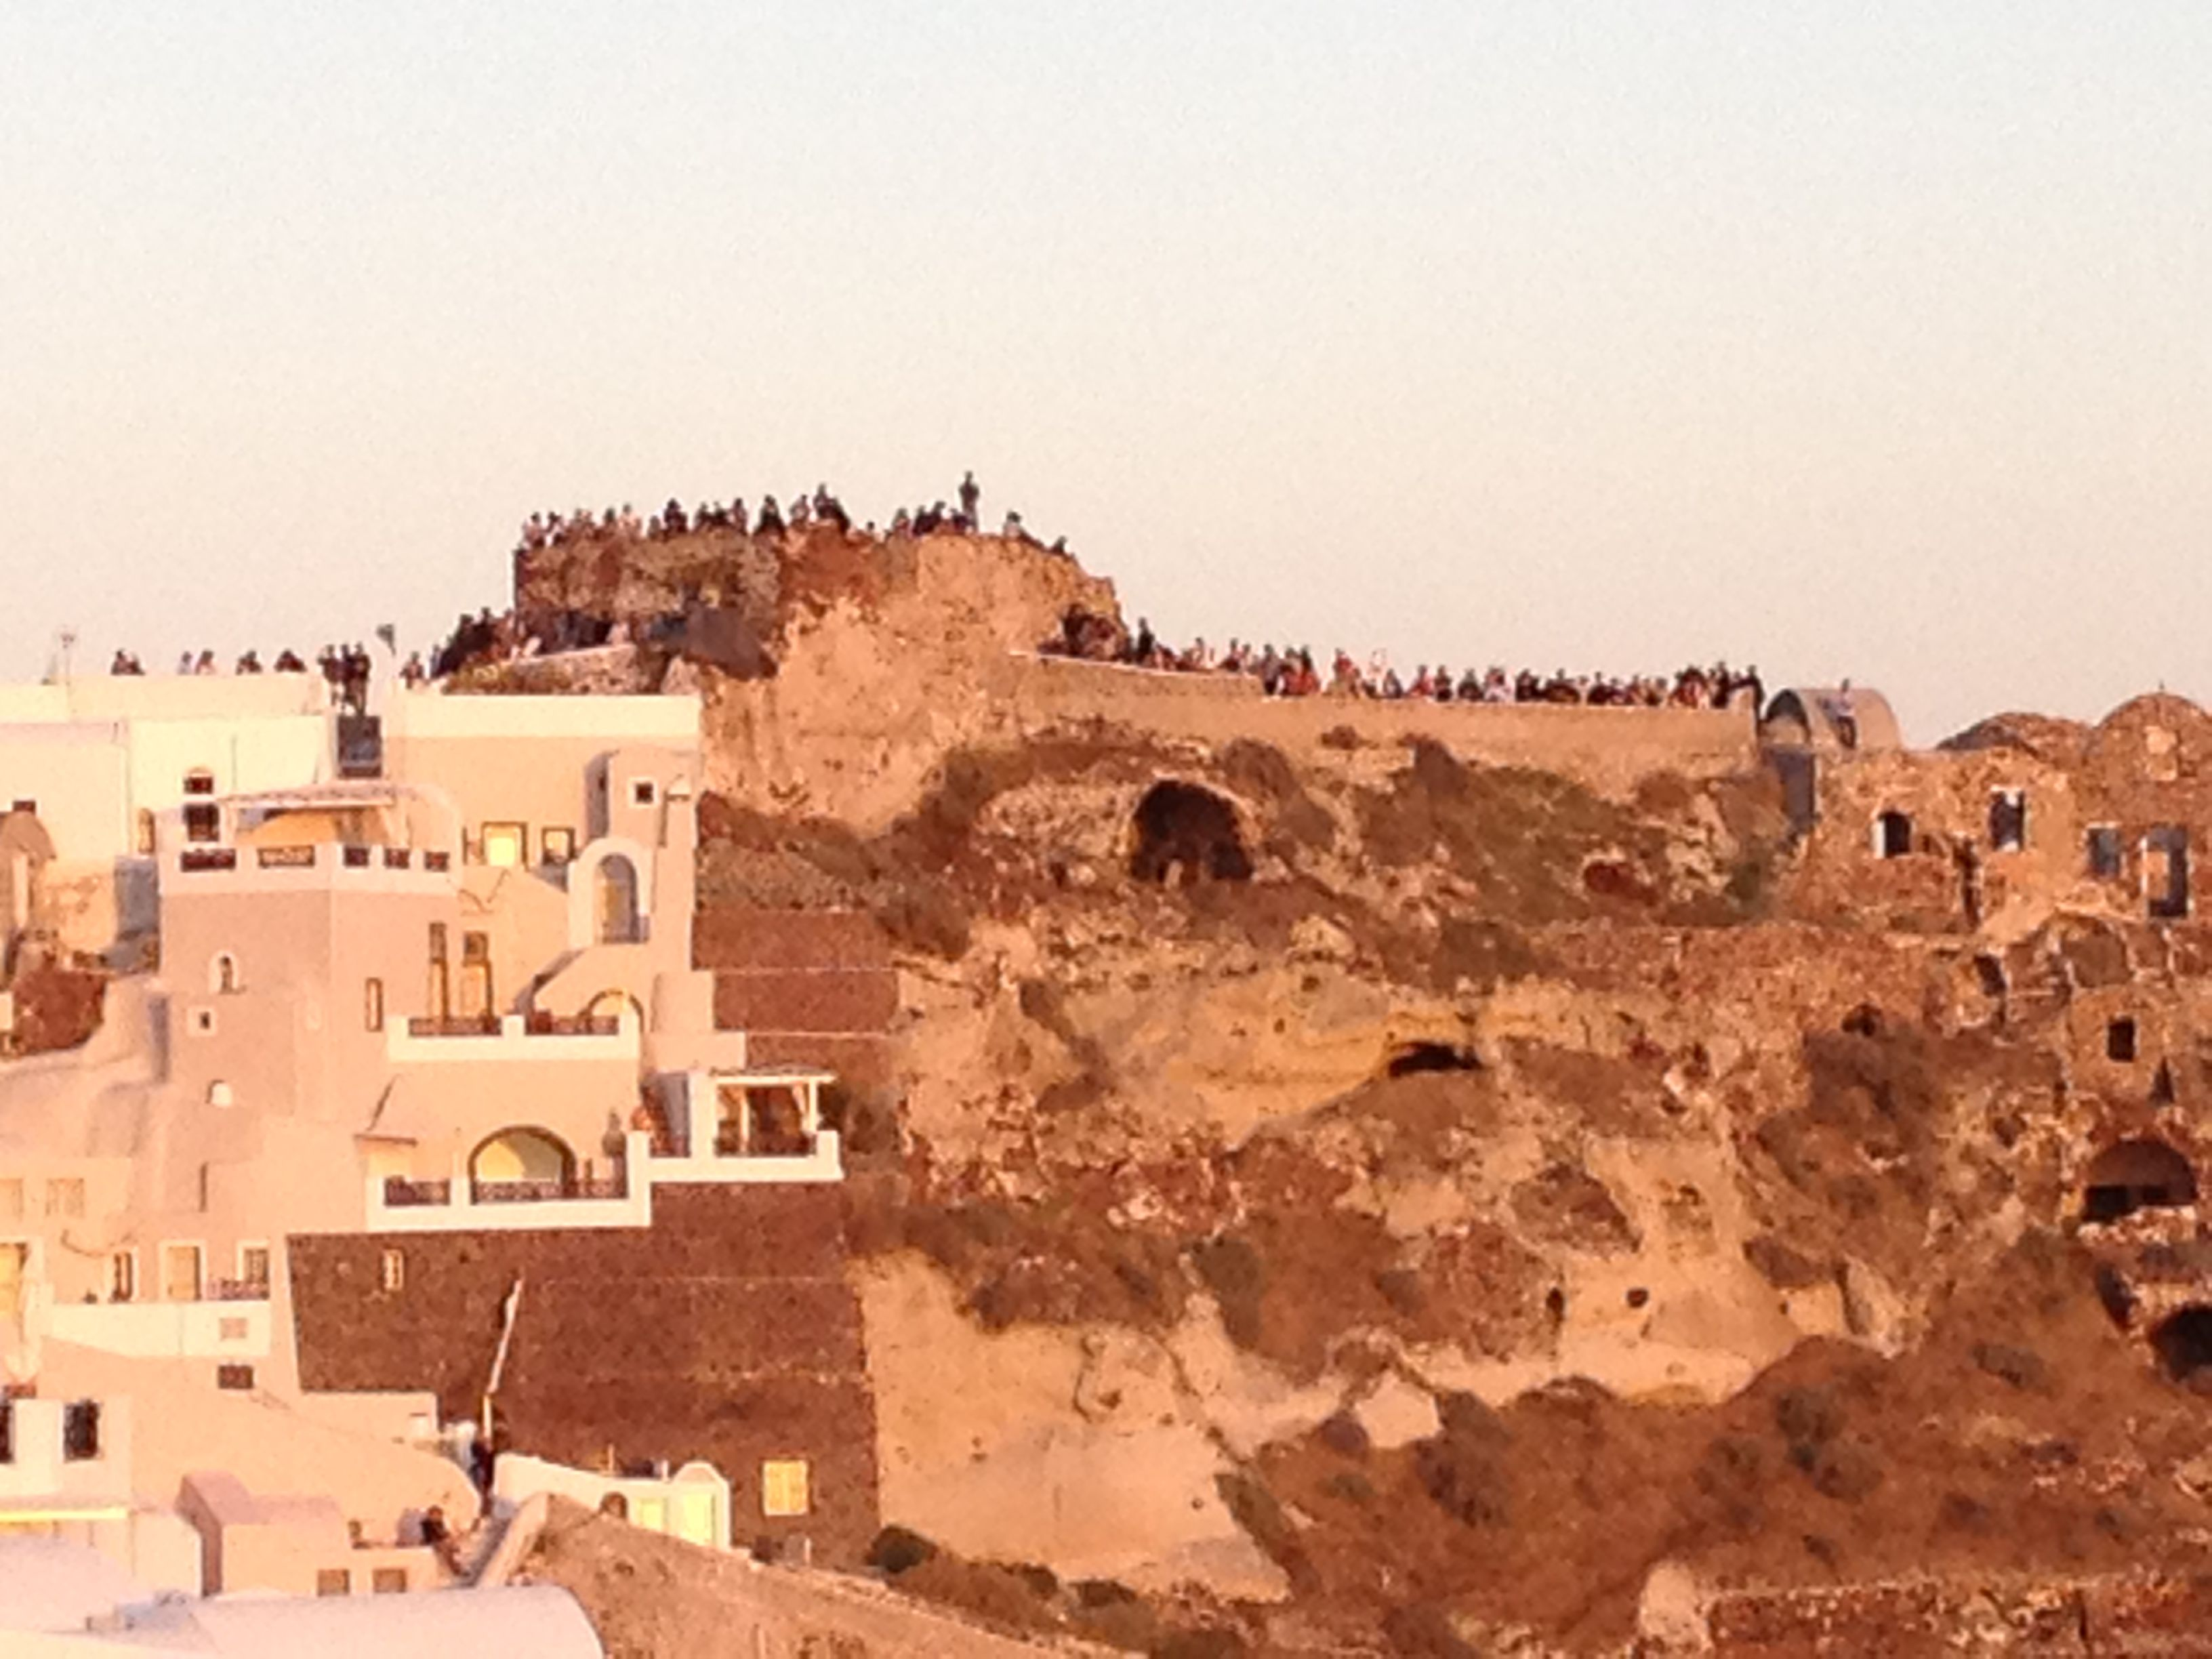 View of Oia castle from our house with people watching the sunset